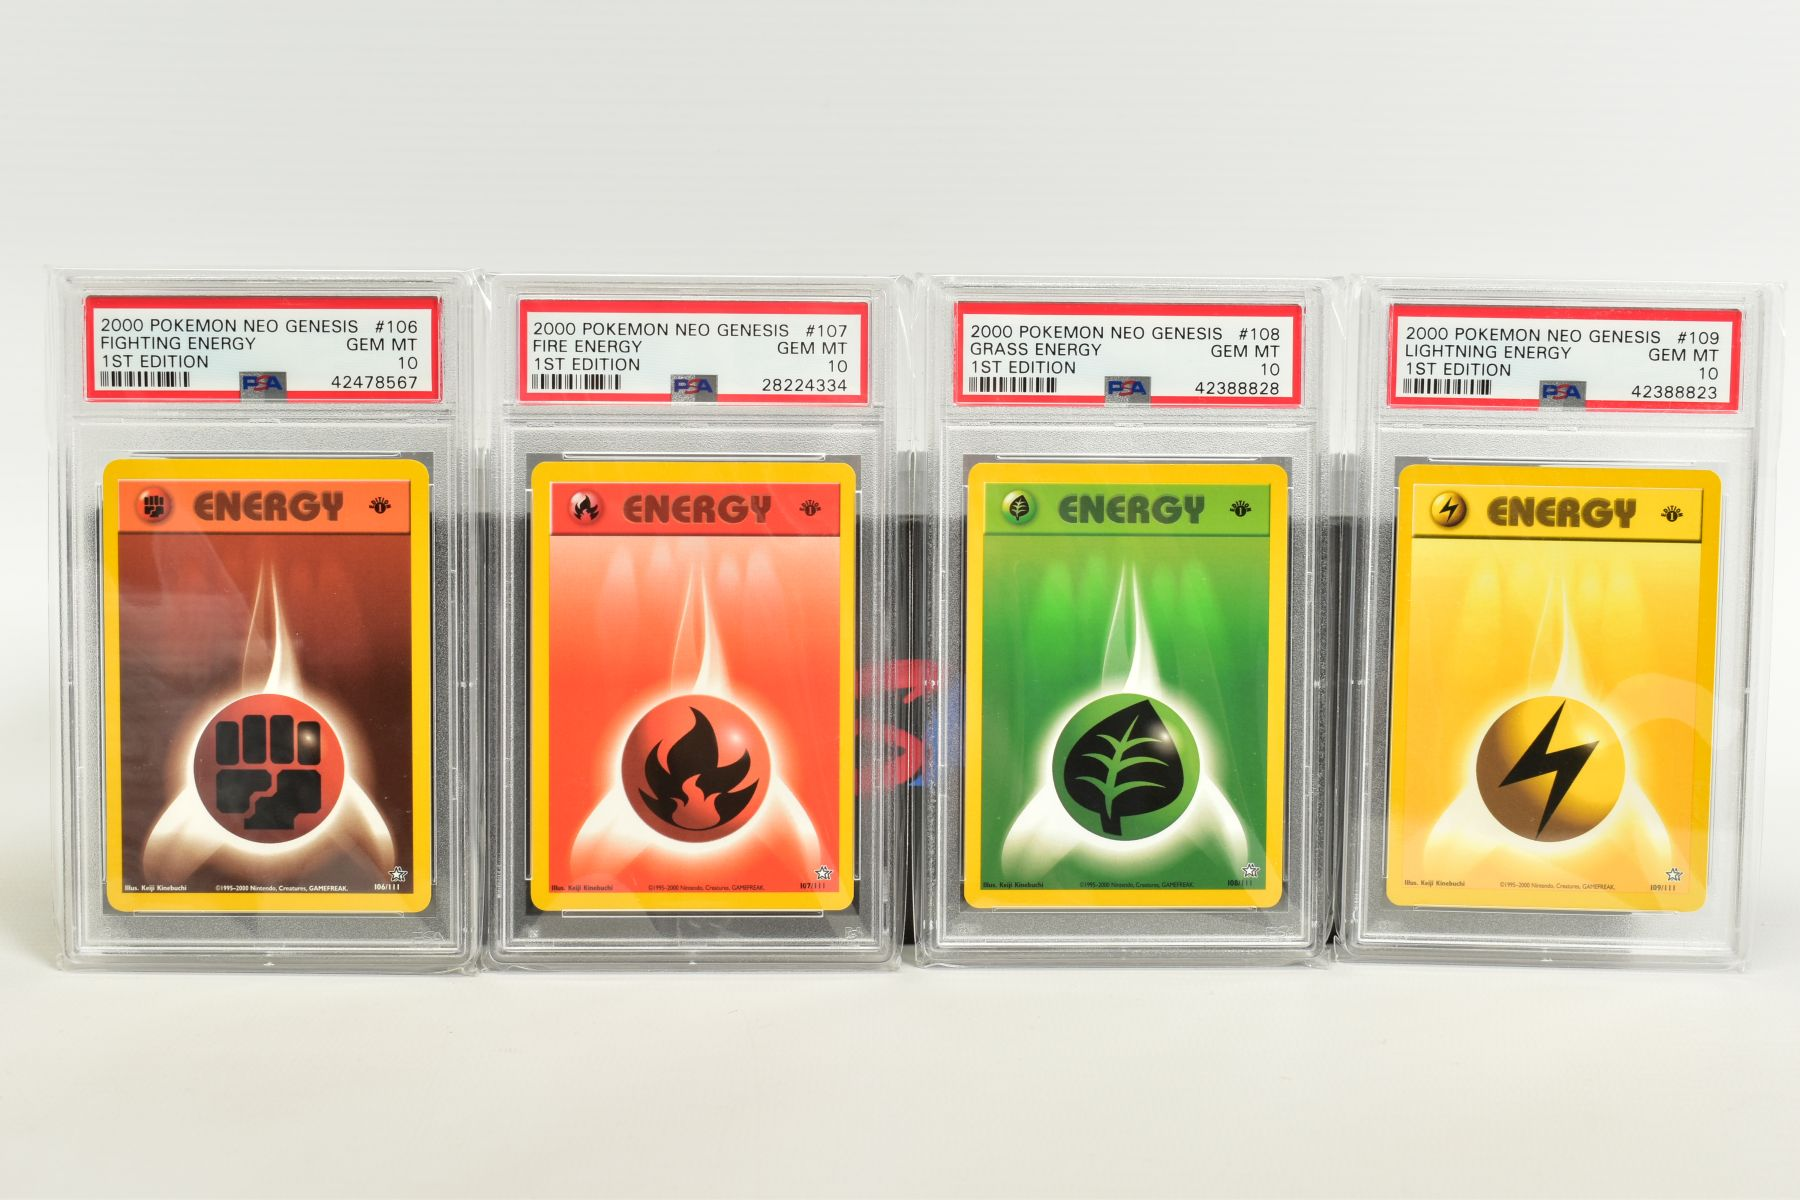 A QUANTITY OF PSA GRADED POKEMON 1ST EDITION NEO GENESIS SET CARDS, all are graded GEM MINT 10 and - Image 23 of 24